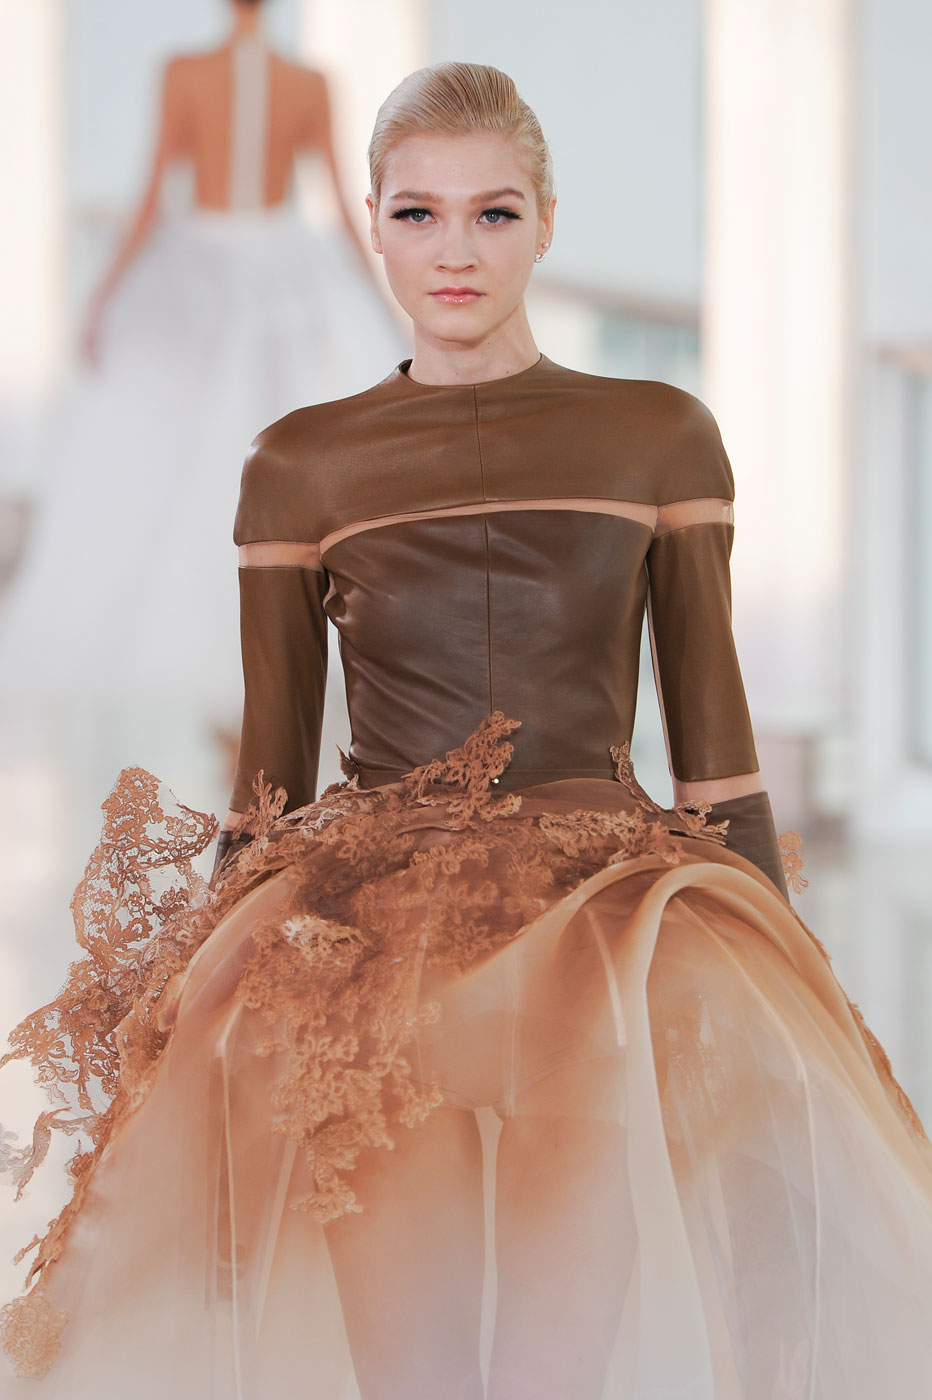 stephane-rolland-fashion-runway-show-haute-couture-paris-spring-2015-the-impression-06